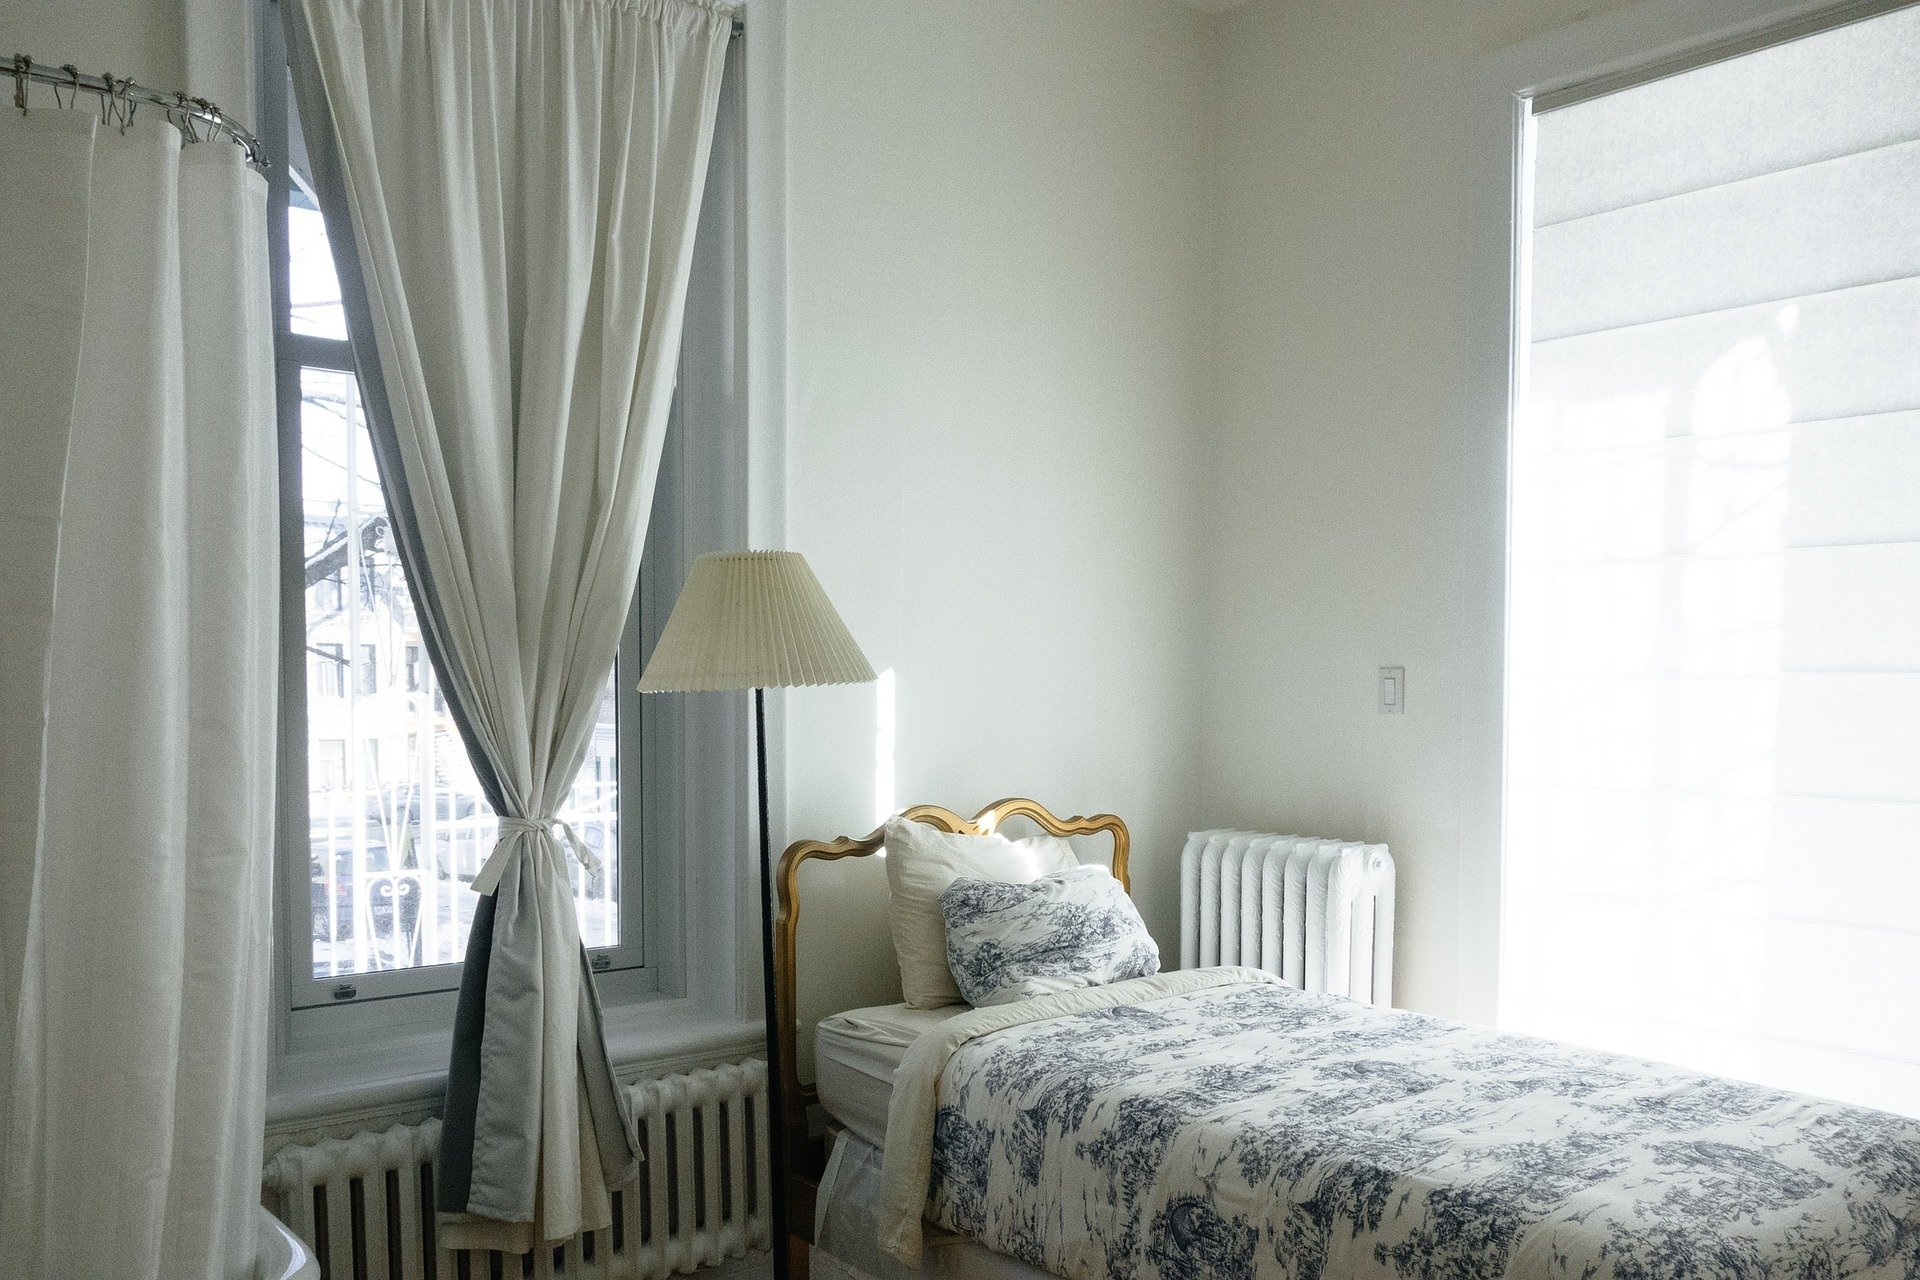 What are the best curtains and blinds for your windows?